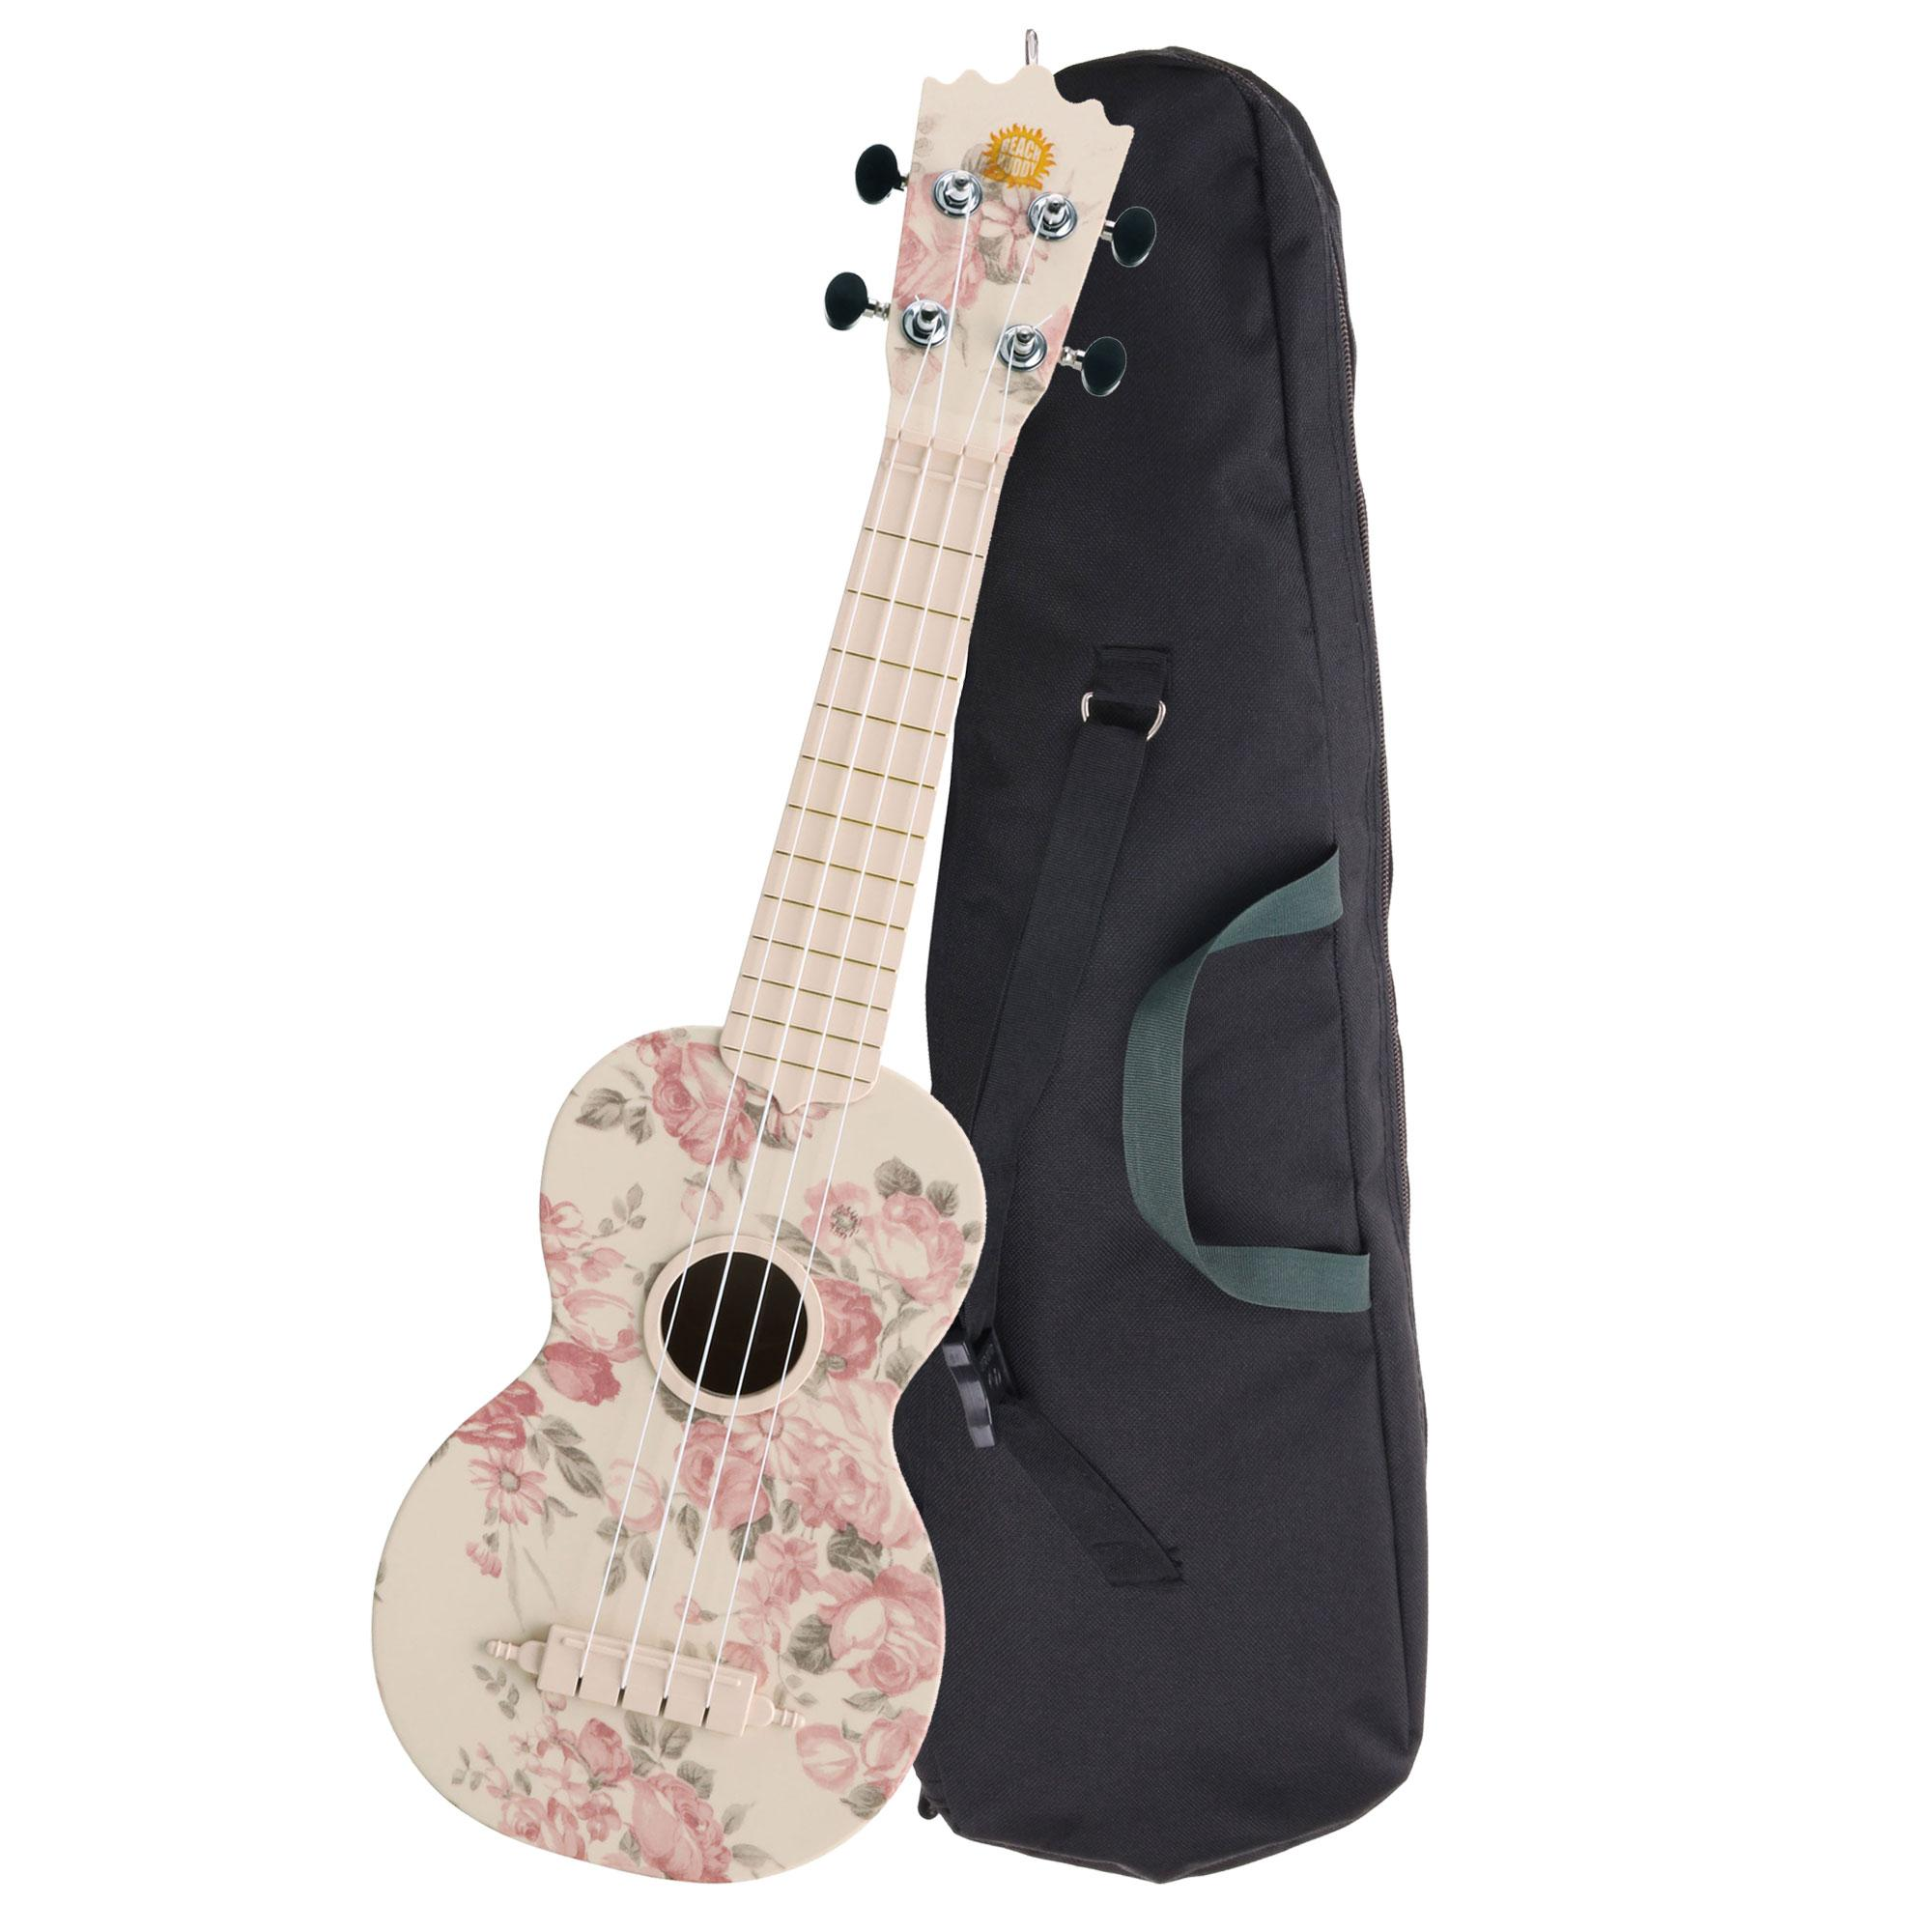 Classic Cantabile BeachBuddy Desert Rose, Sopran Ukulele ABS